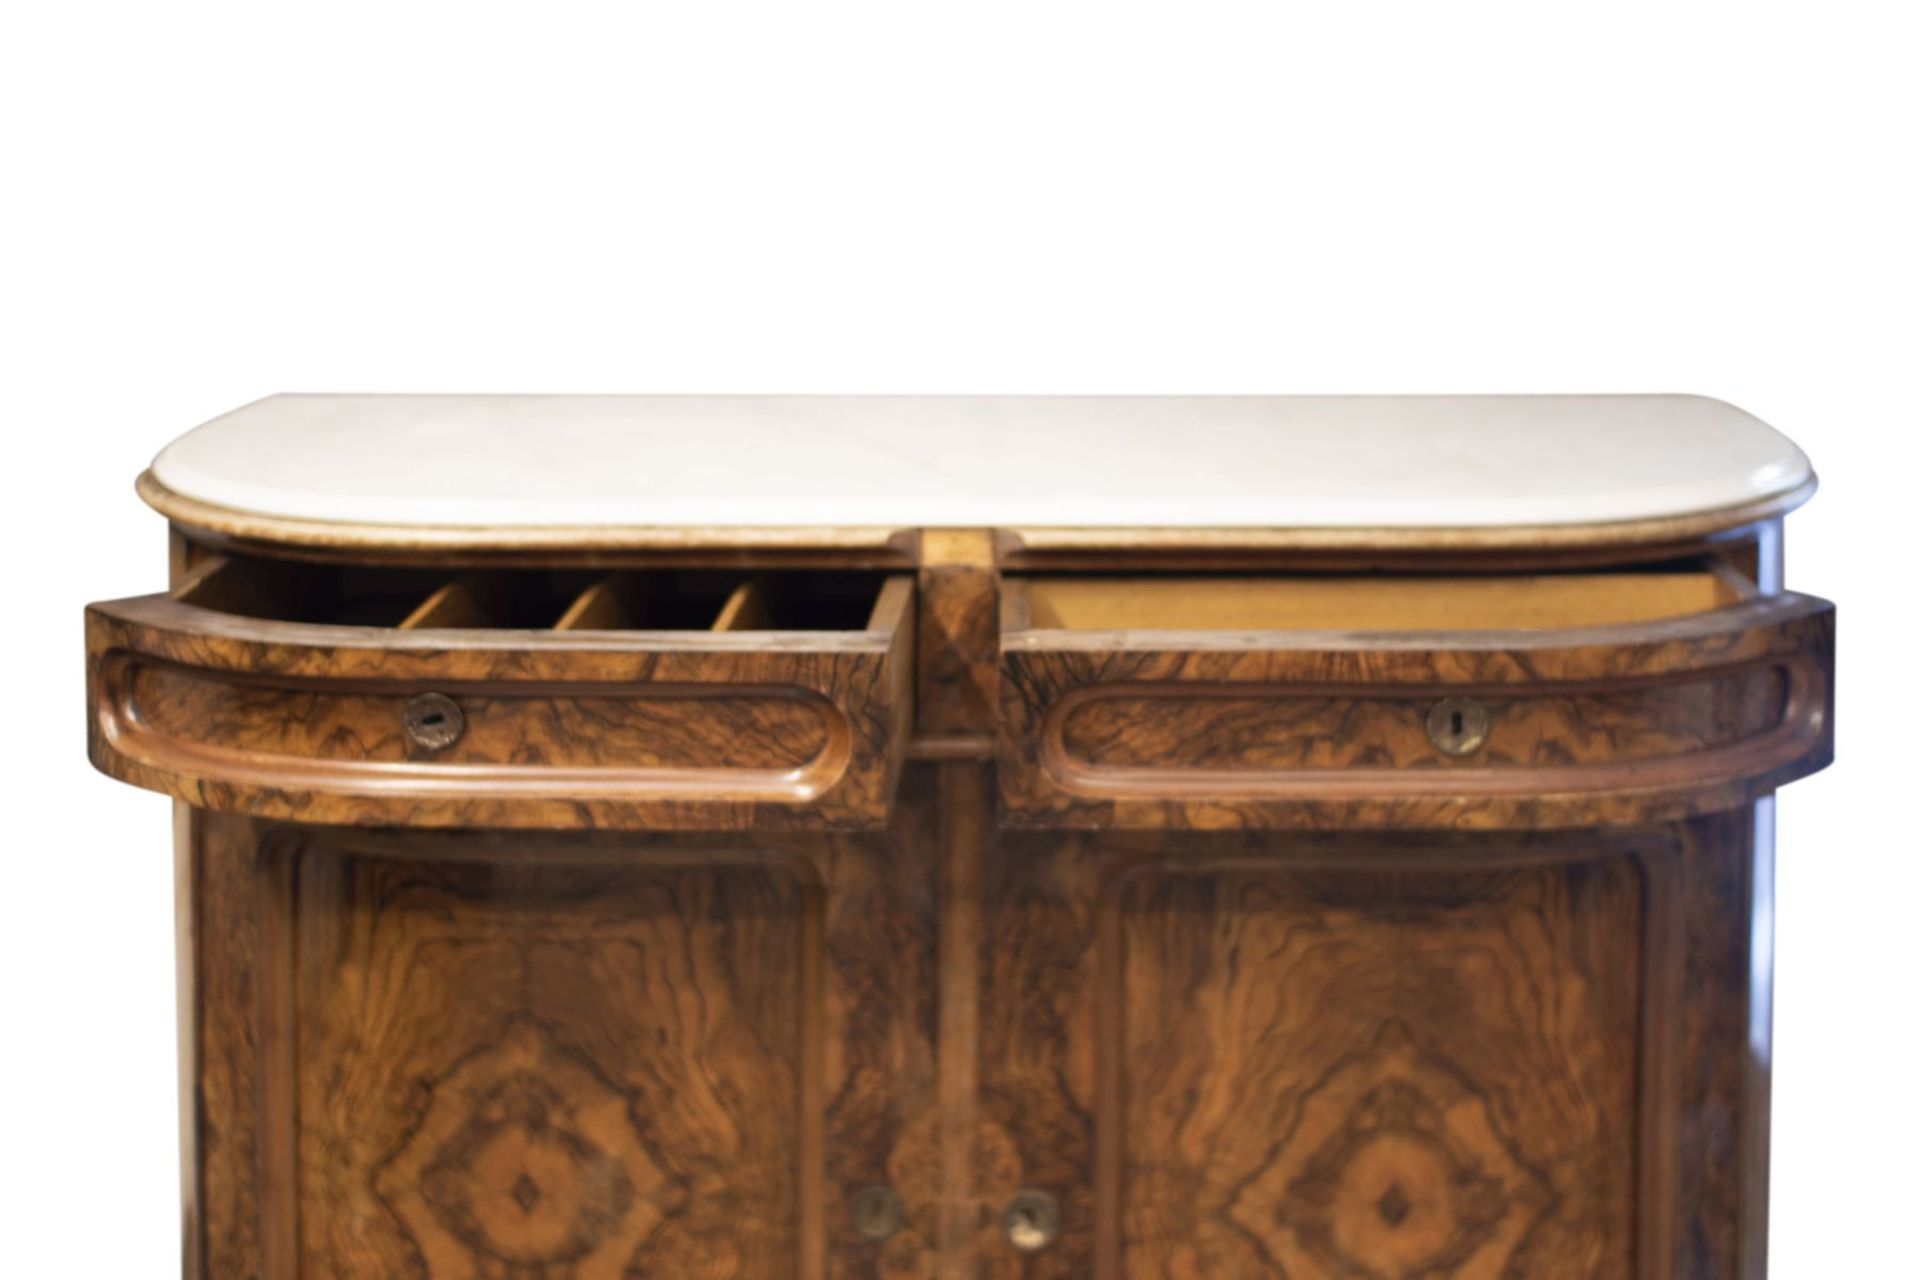 Salon chest of drawers with profiled marble top - Image 5 of 6